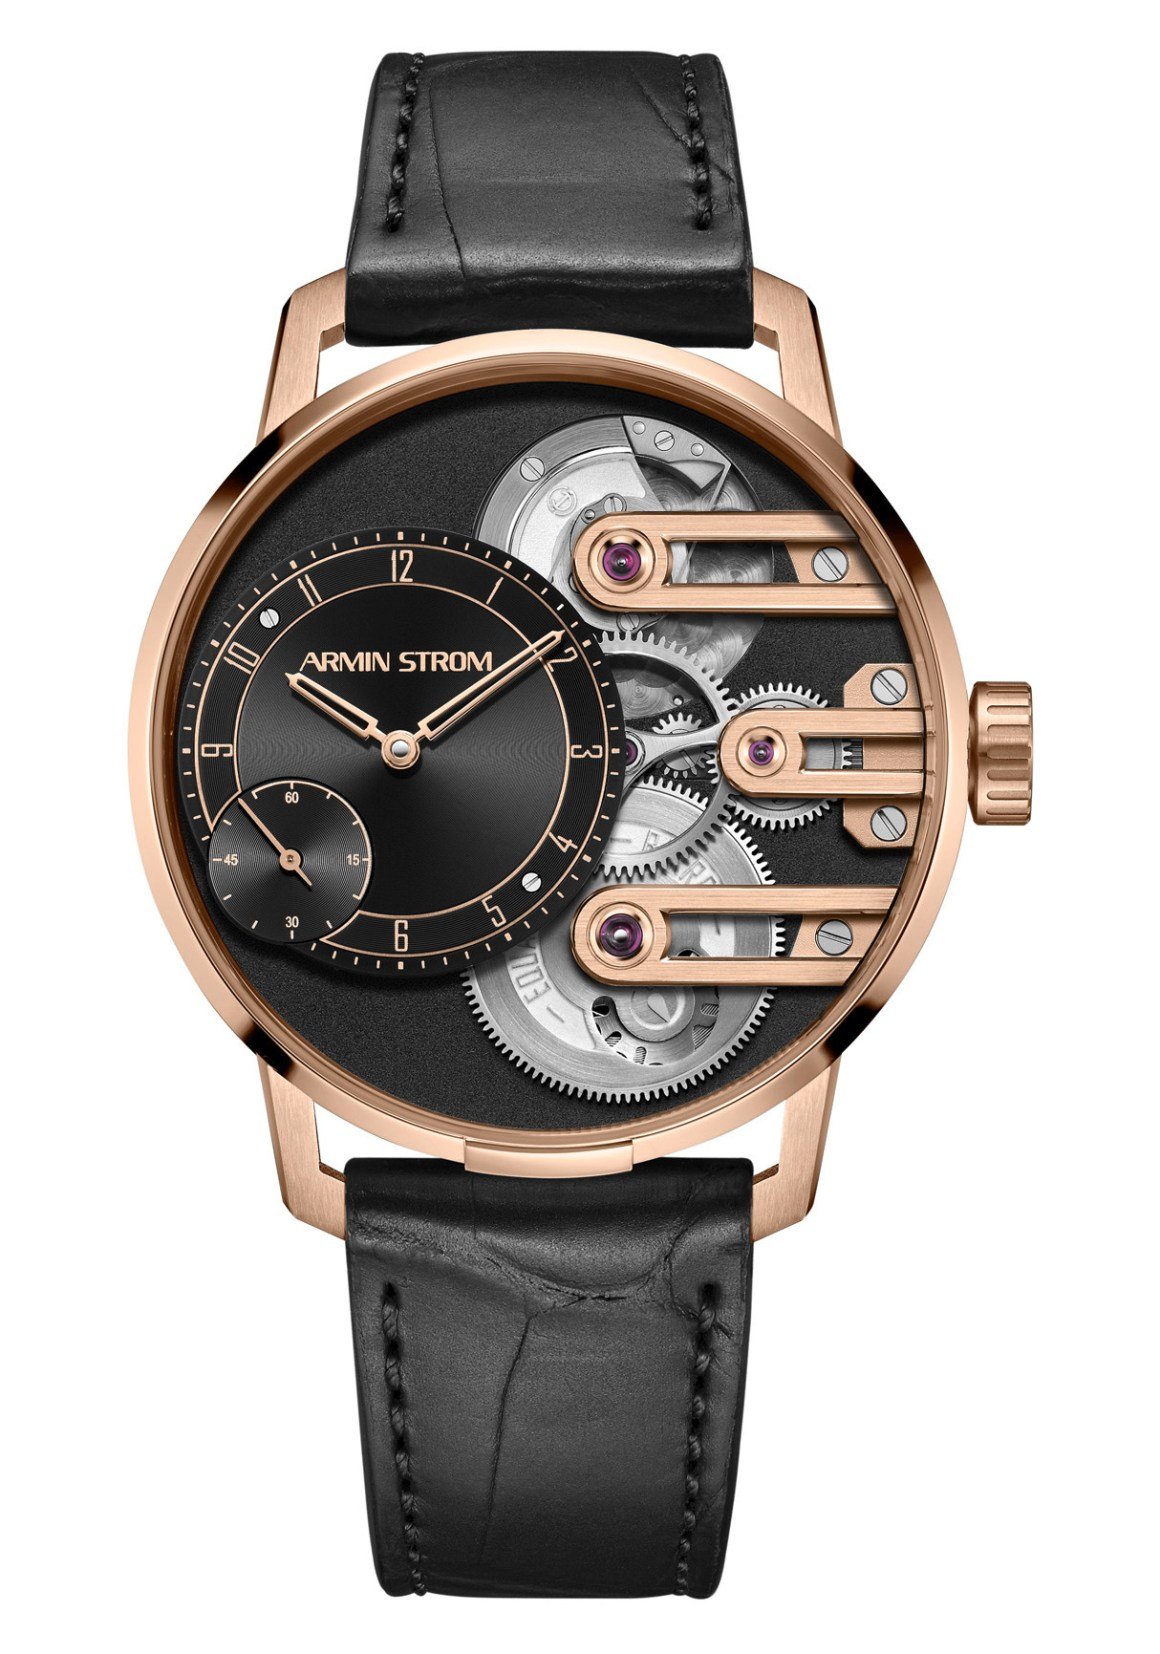 Armin Strom Gravity Equal Force or rose 18ct